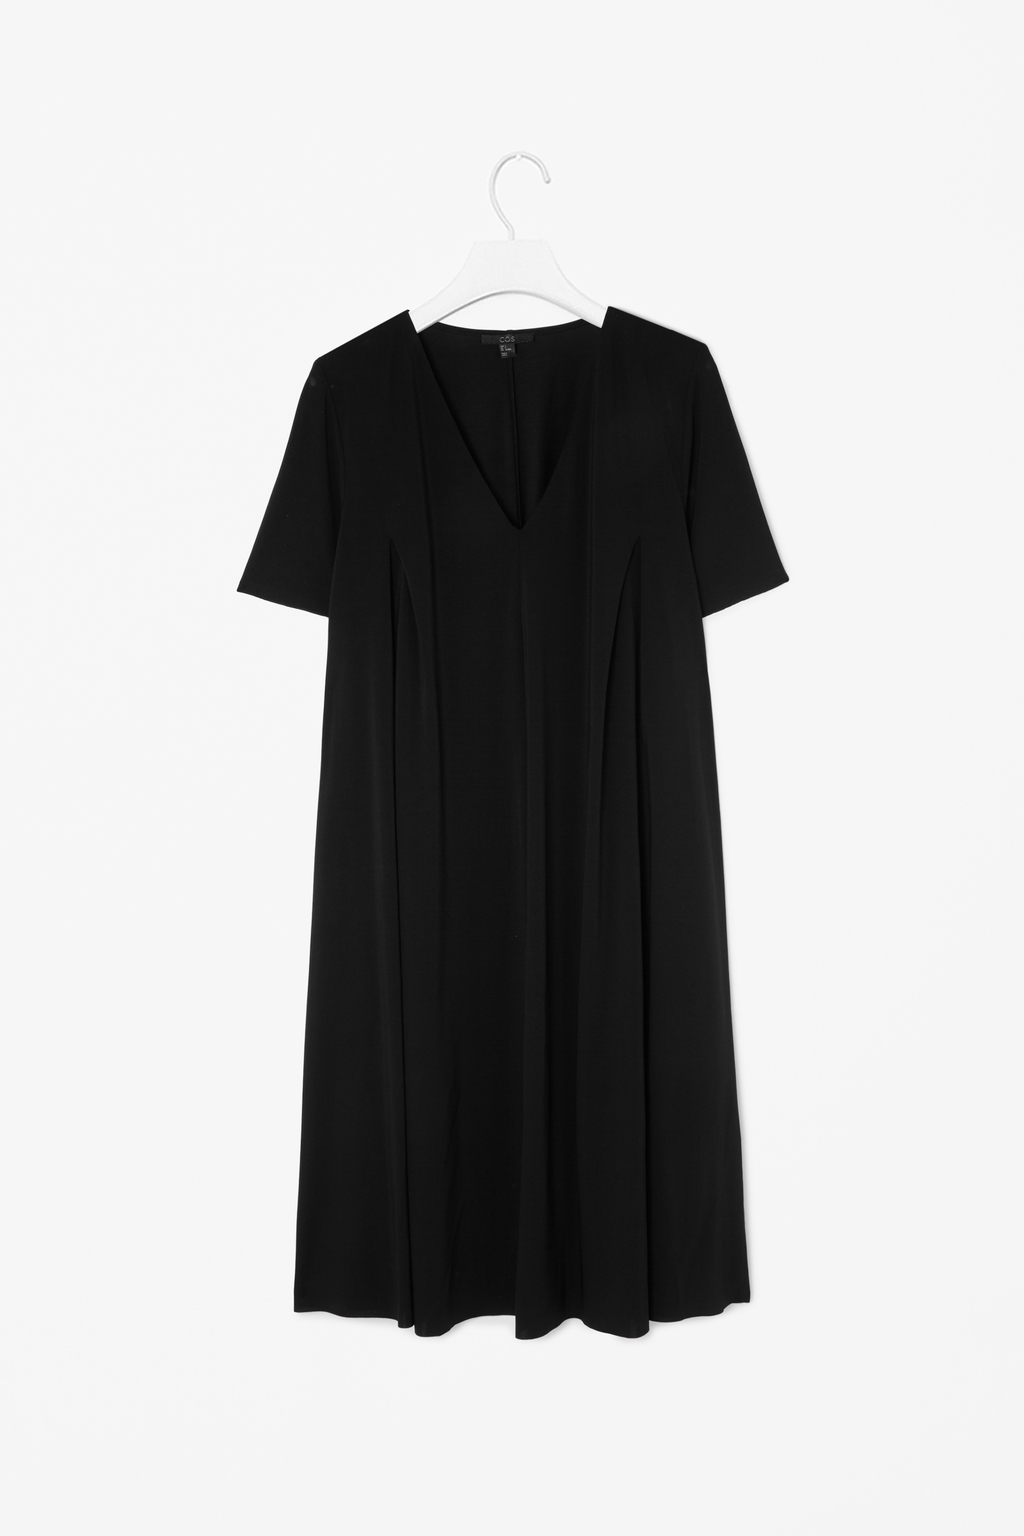 Dress With V Neckline - style: trapeze; neckline: low v-neck; fit: loose; pattern: plain; predominant colour: black; occasions: casual, evening, creative work; length: just above the knee; sleeve length: short sleeve; sleeve style: standard; pattern type: fabric; texture group: jersey - stretchy/drapey; fibres: viscose/rayon - mix; season: s/s 2014